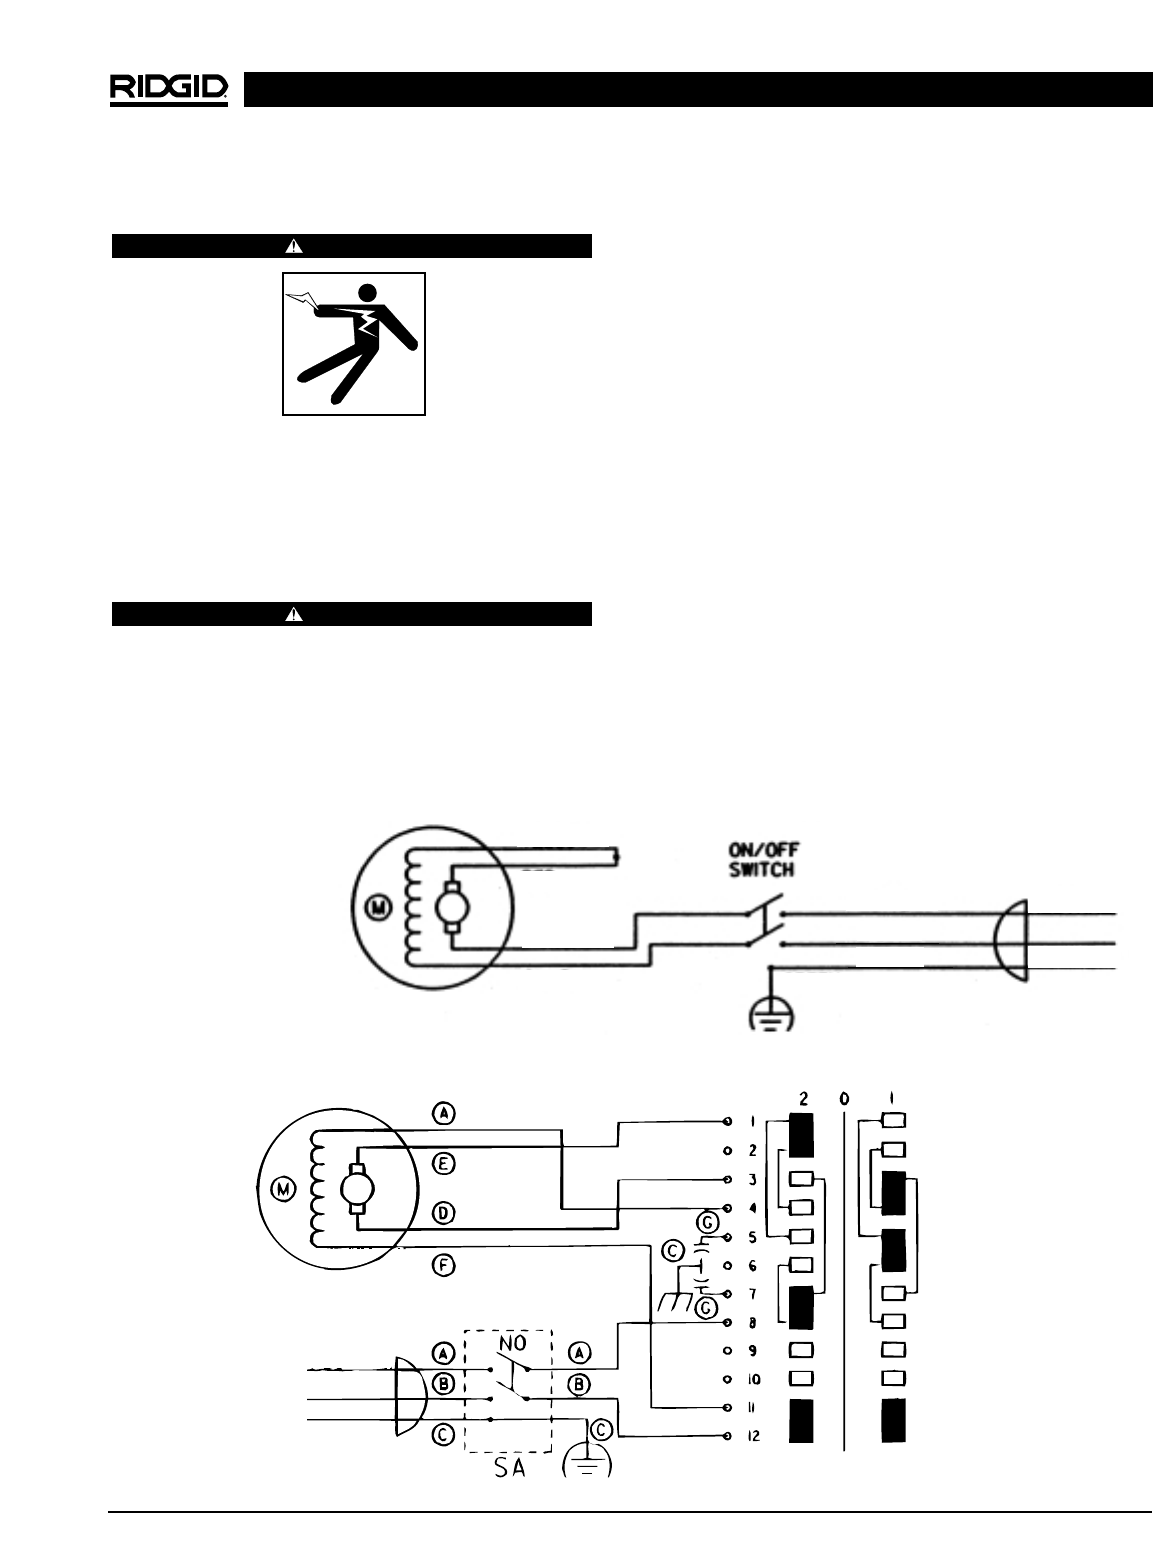 68b109bc 3c1f 445d 9958 08de9edaa37c bg13 page 19 of ridgid sewing machine 300 user guide manualsonline com ridgid 300 wiring diagram at cita.asia